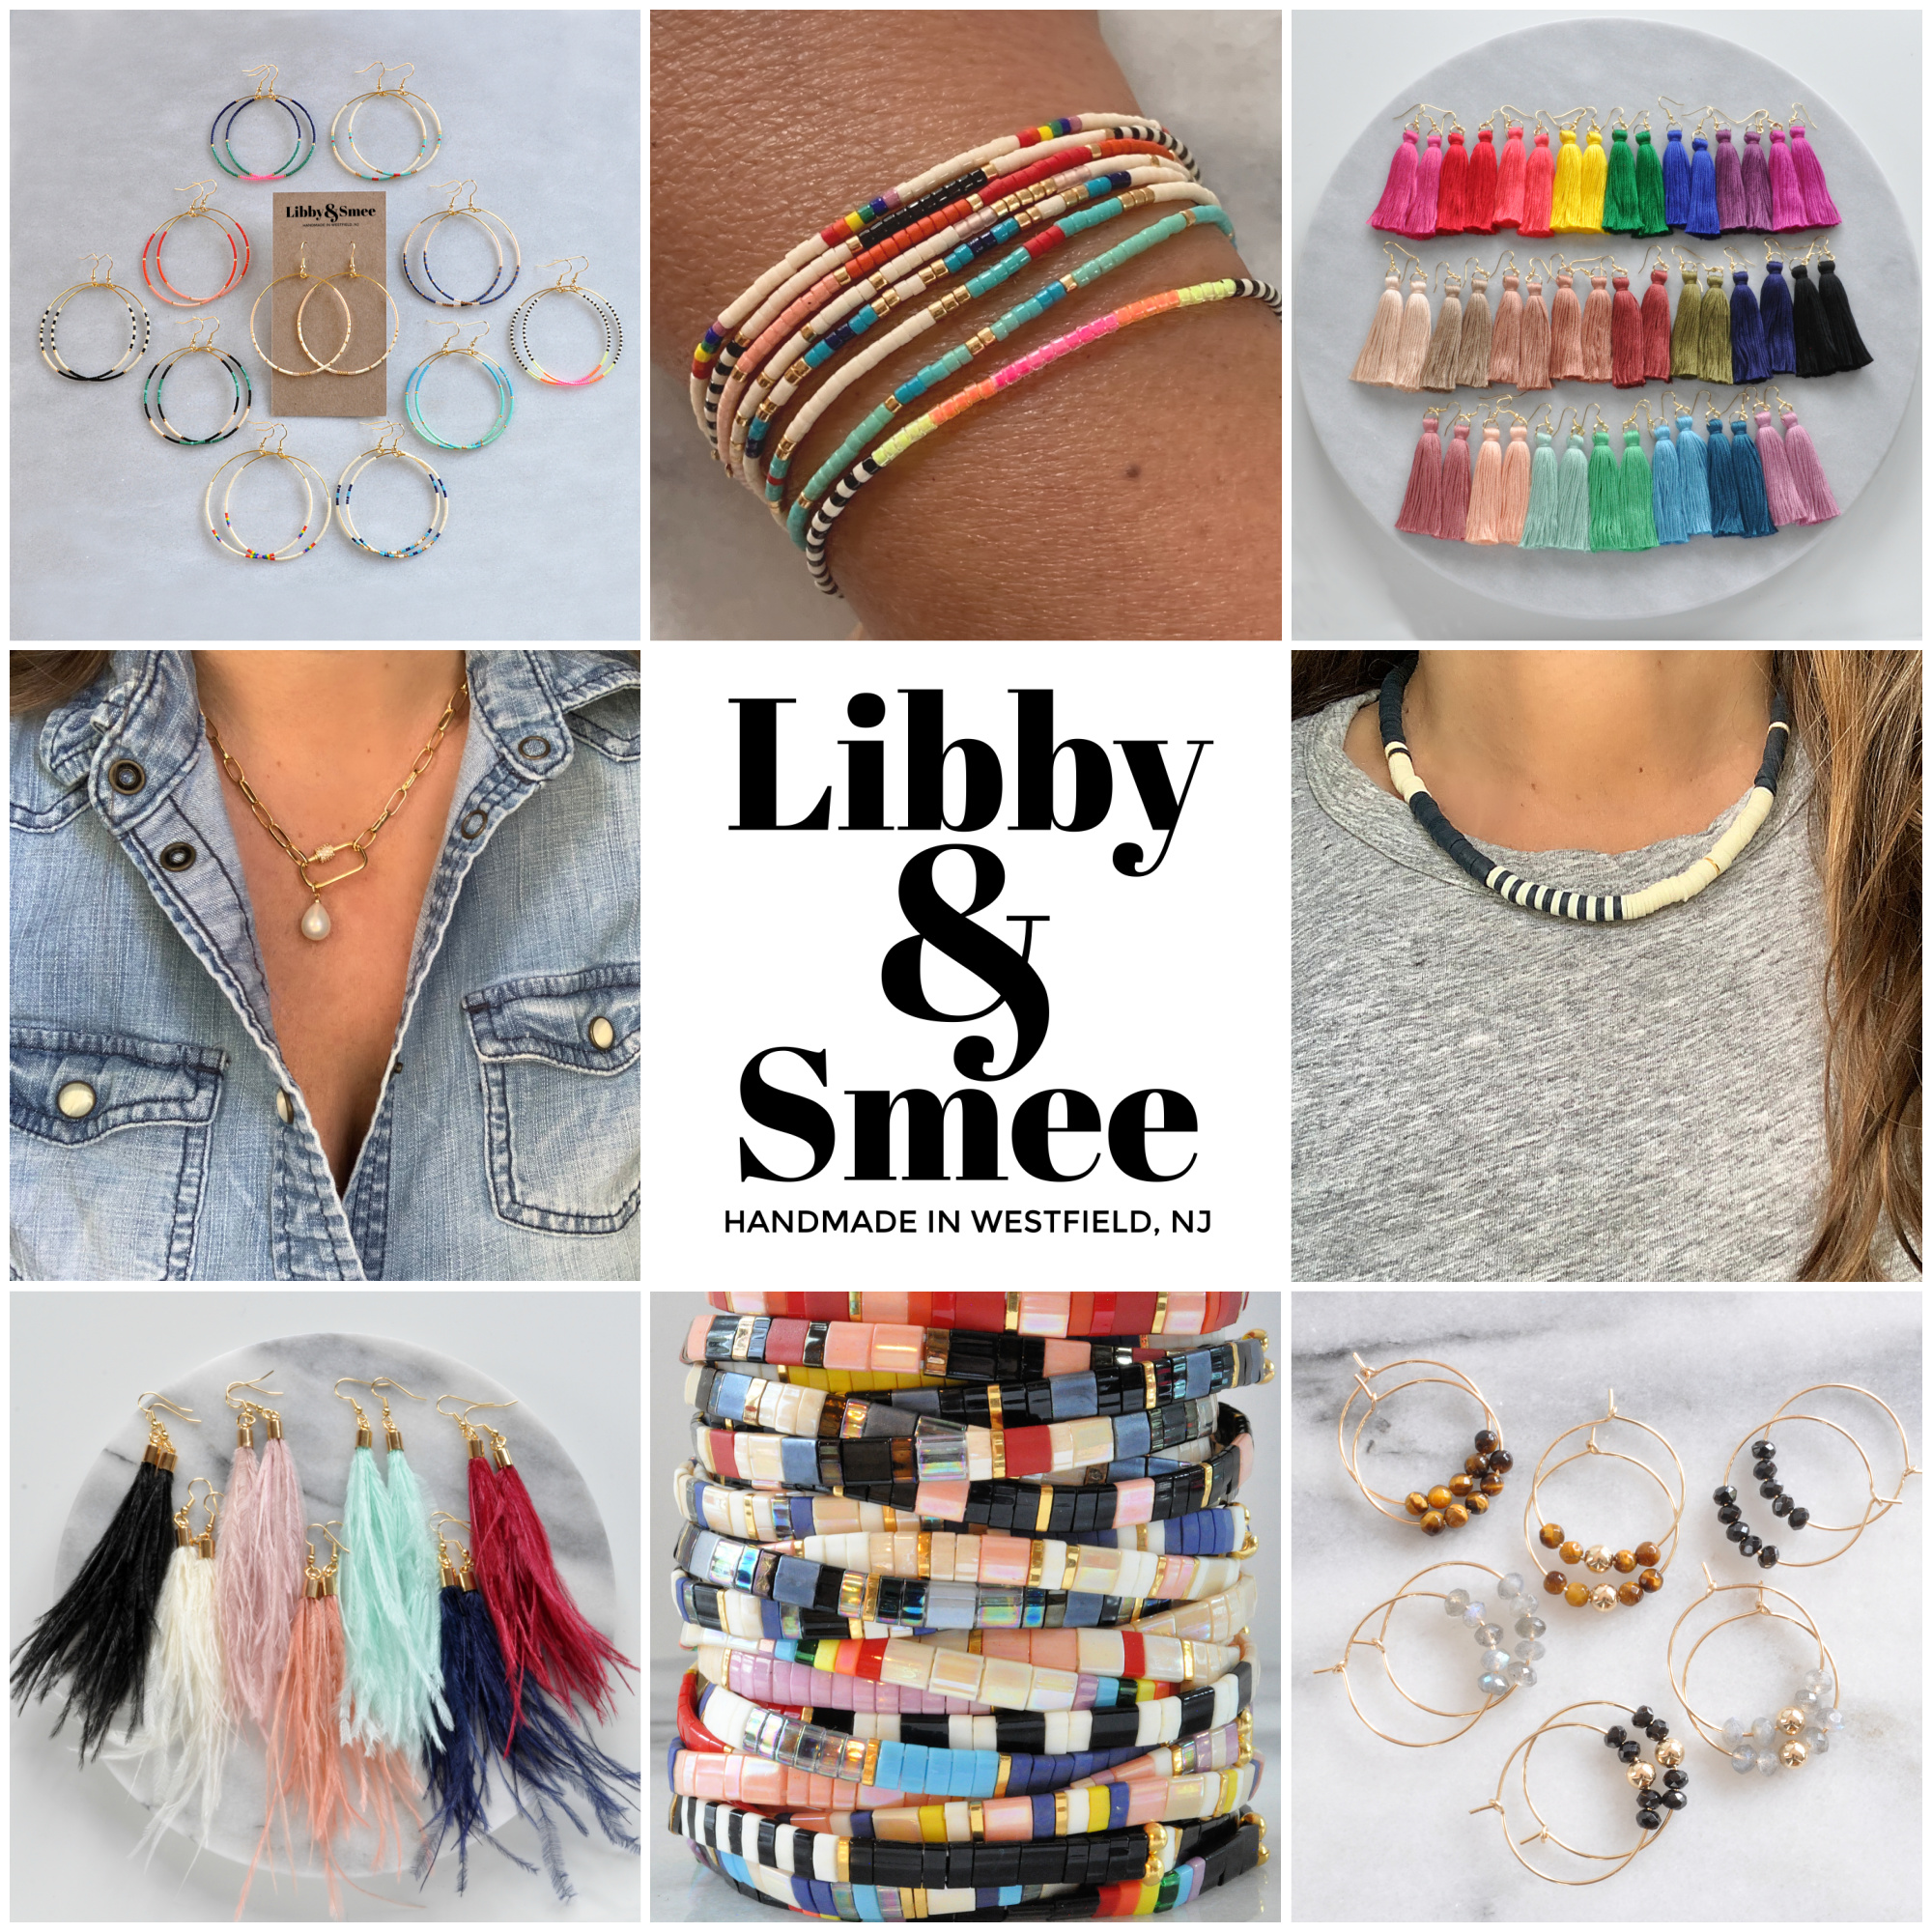 Libby & Smee brand collage featuring colorful handmade jewelry